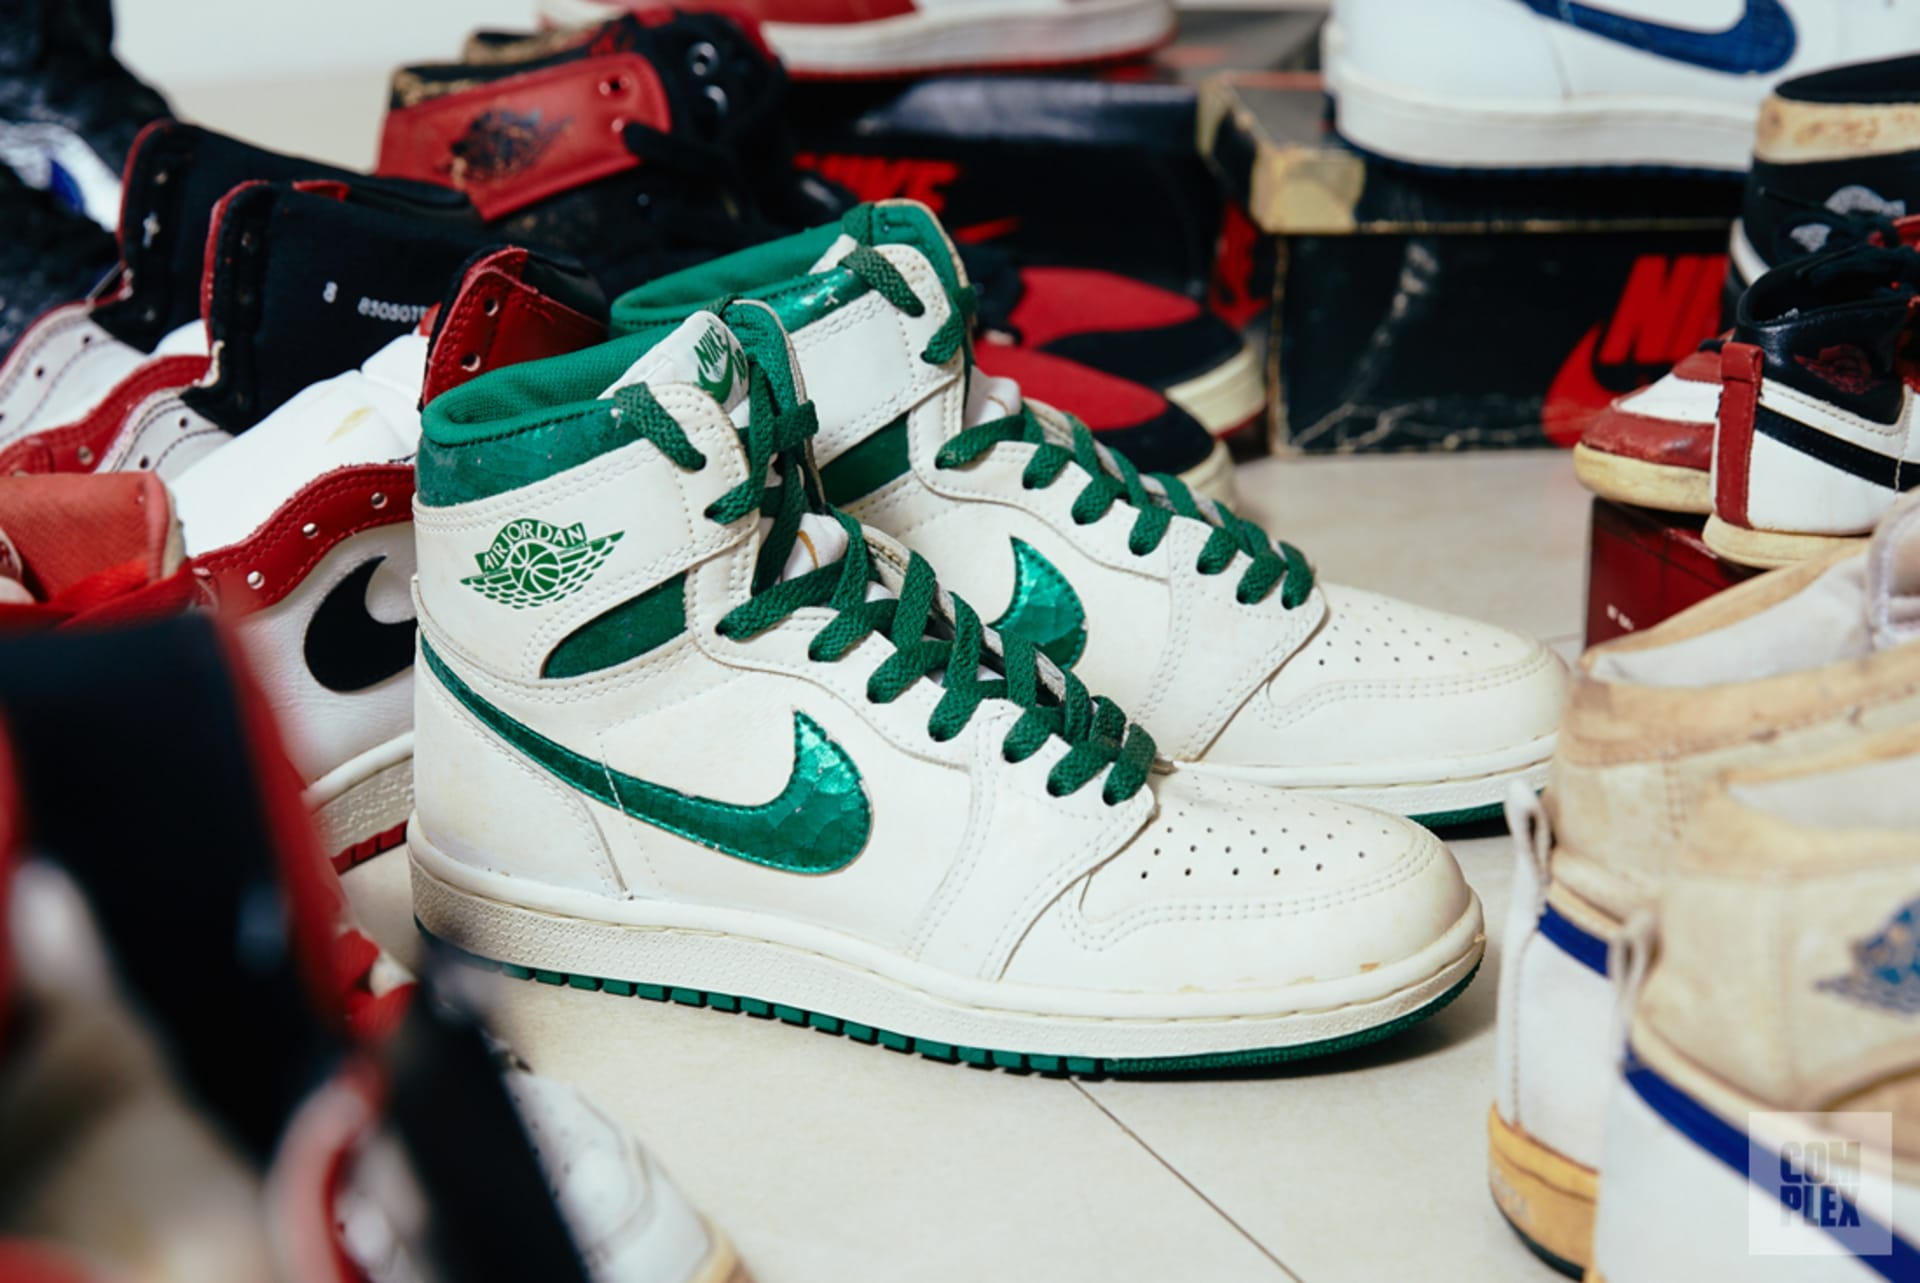 f7f8d05c4cfa Meet the 17-Year-Old With the Best O.G. Air Jordan 1 Collection ...